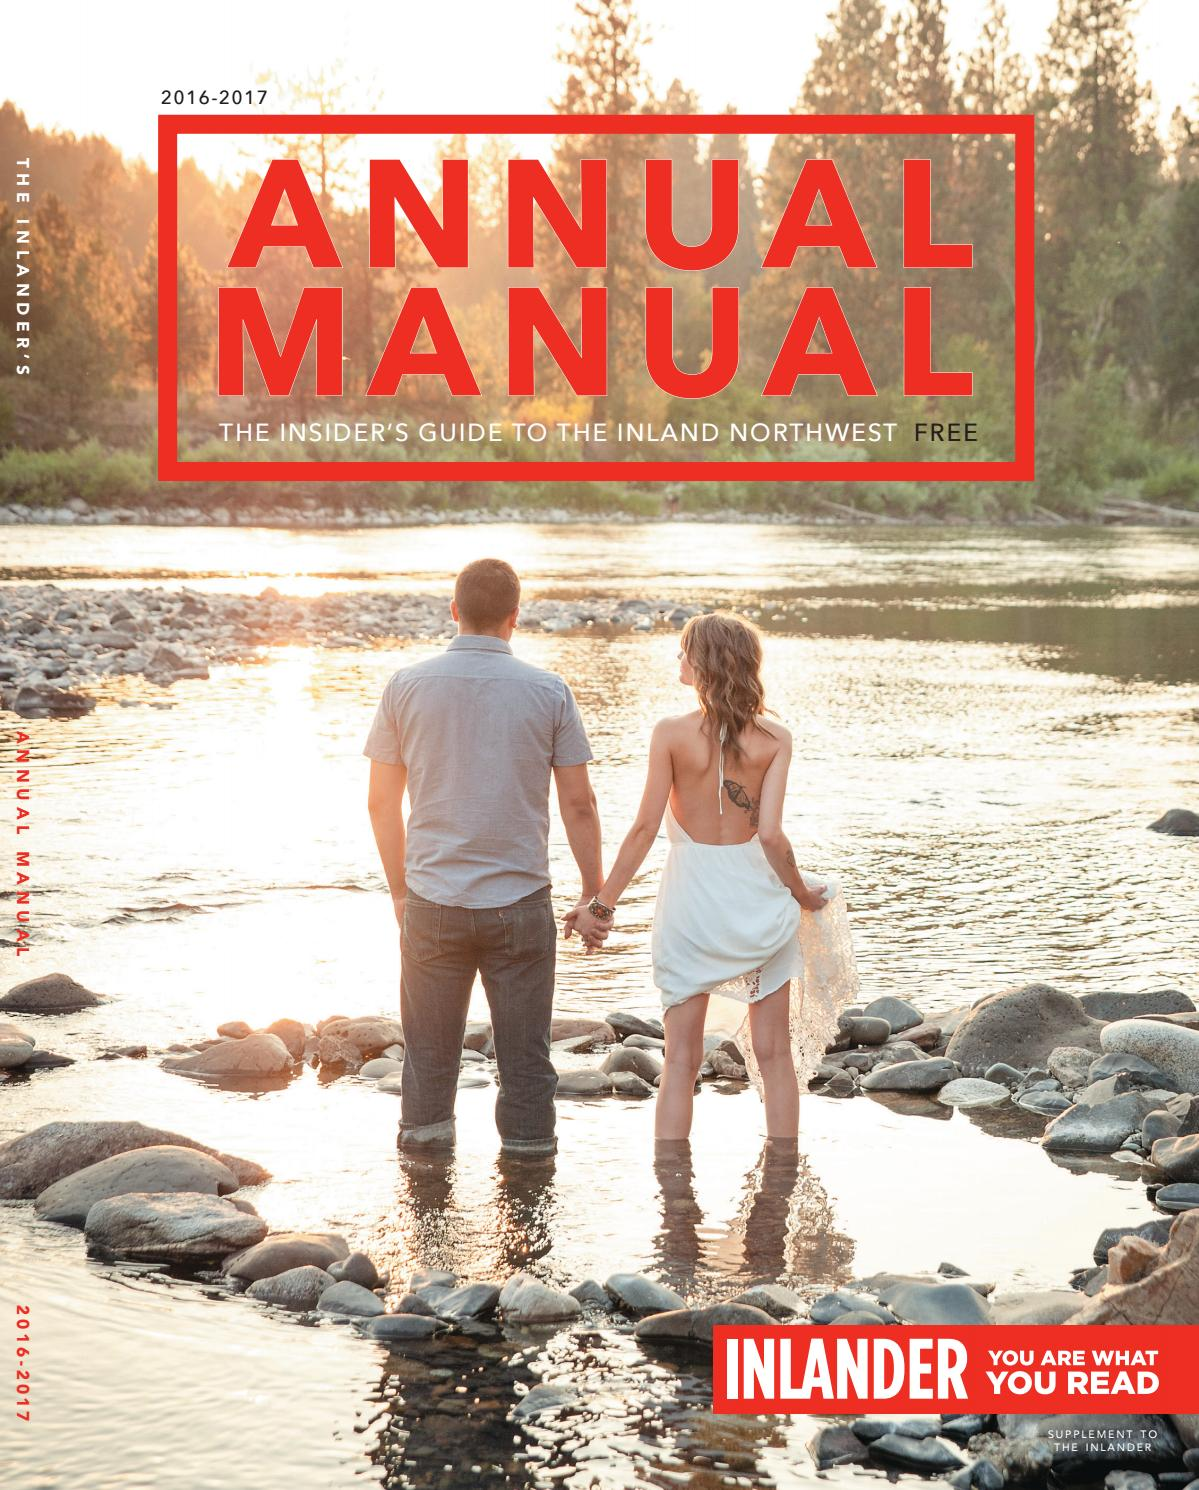 9dc39f8e04cb Annual Manual 2016-17 by The Inlander - issuu